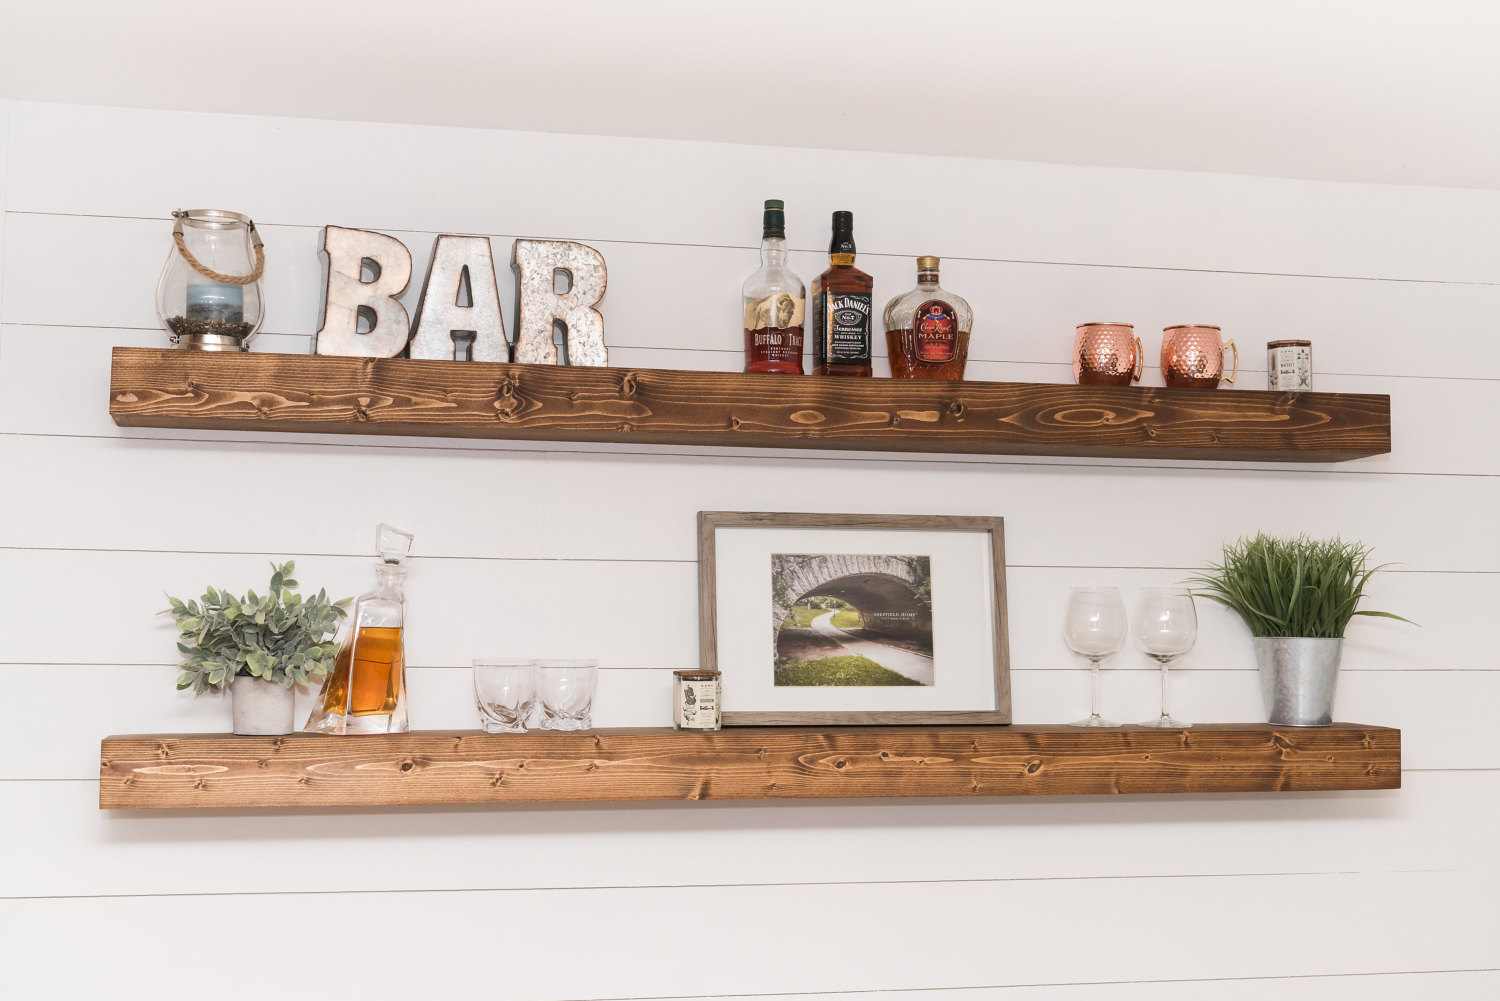 long floating shelf farmhouse shelves fullxfull jpow depth kitchen crown molding mantle utility kmart clothes rack laying peel and stick flooring wall bracket for cable box